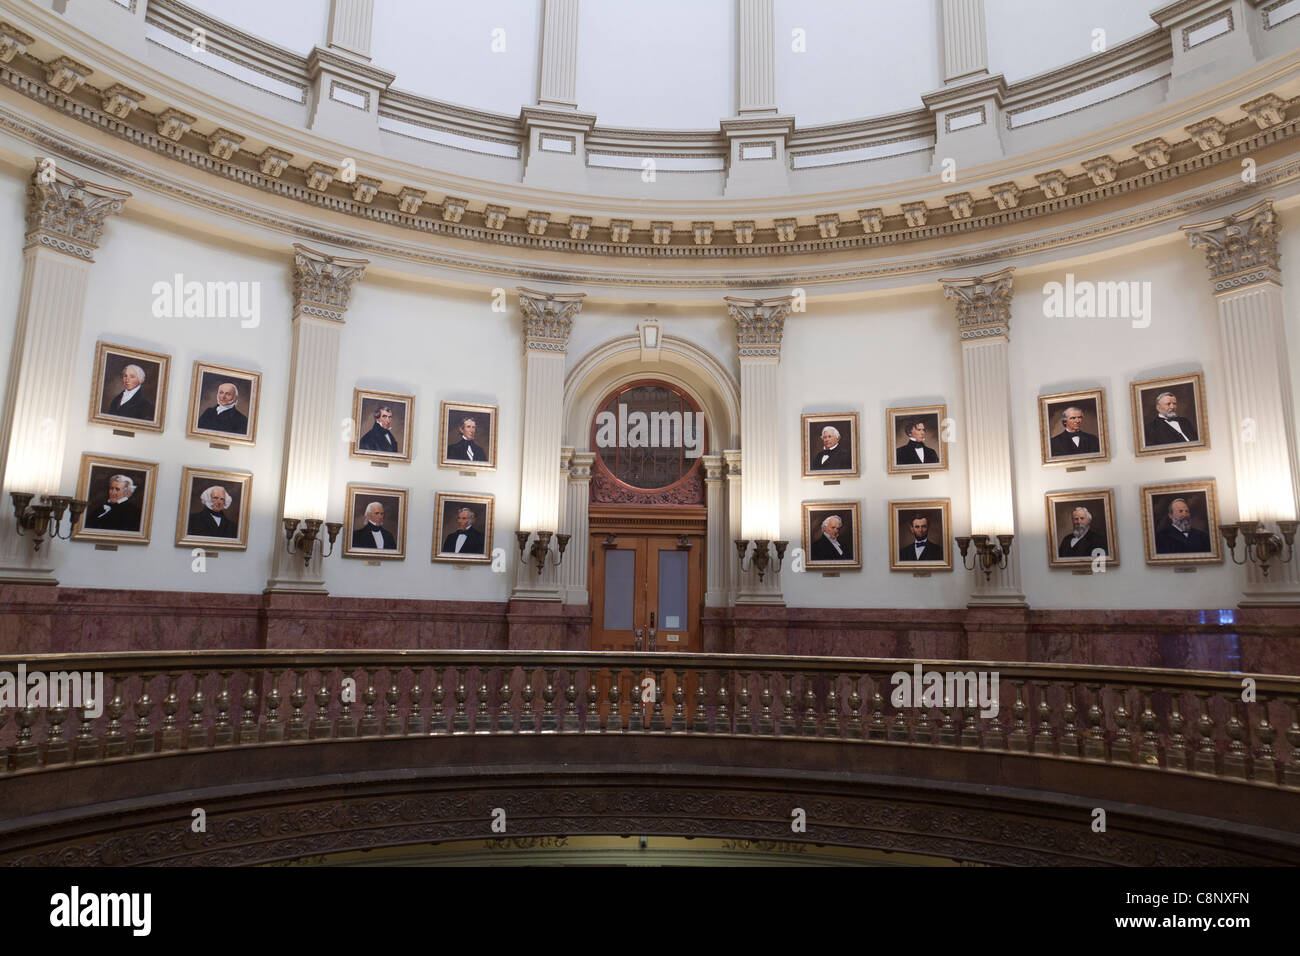 Gallery of Presidents displayed in the rotunda of the Colorado state capitol building in Denver. - Stock Image